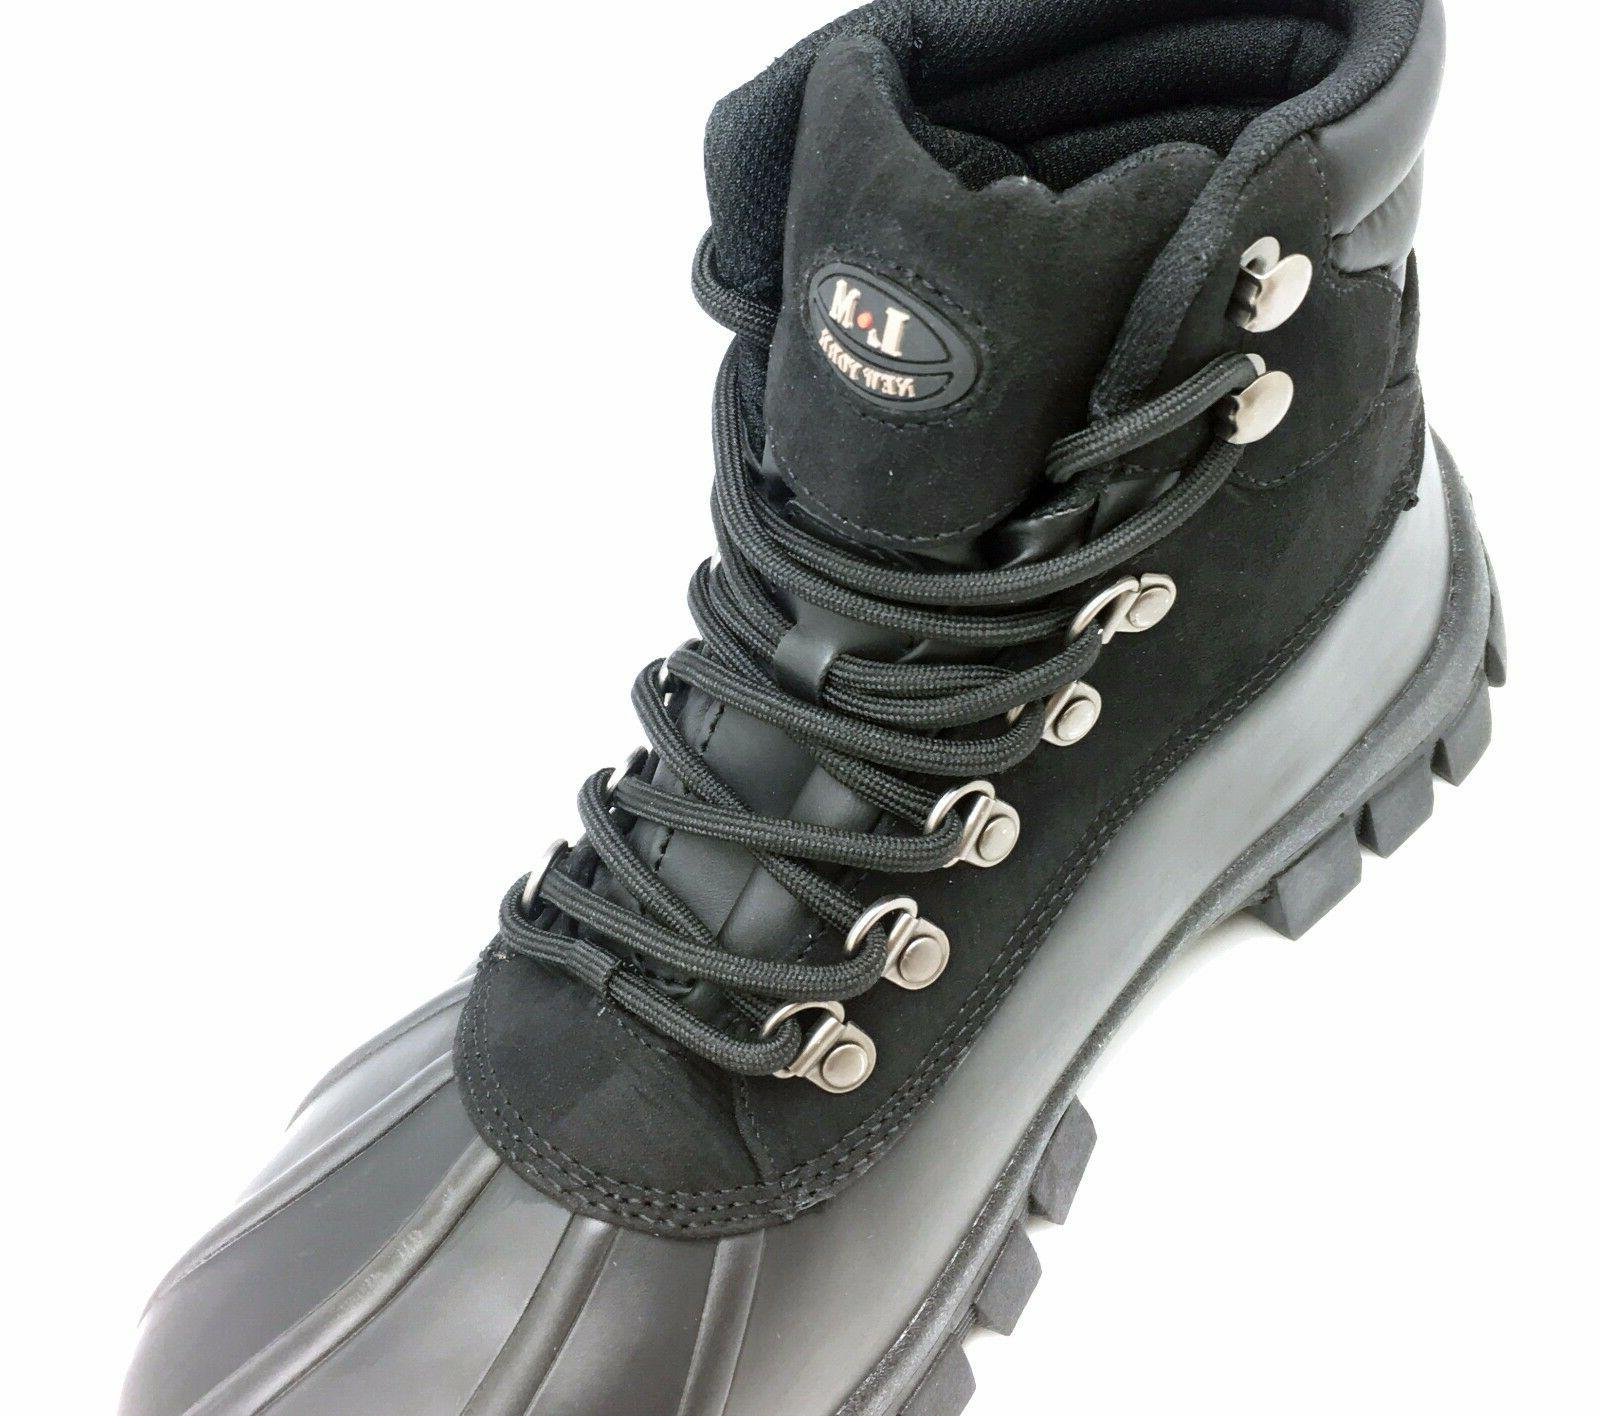 New Winter Men's Work Boots Leather Up Waterproof 2017